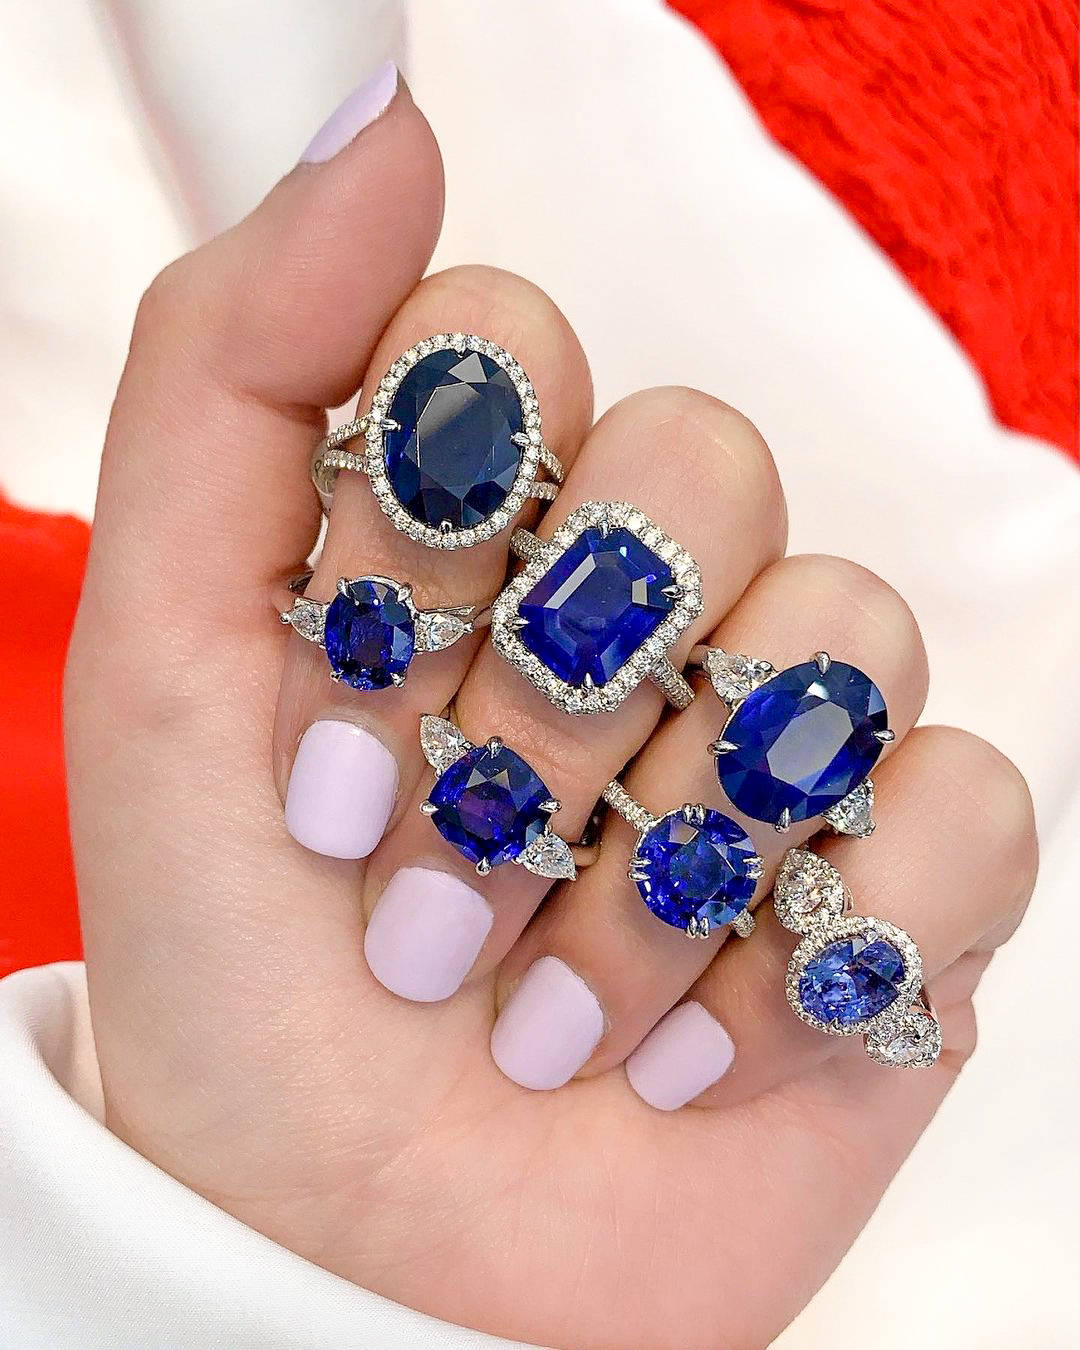 Sapphires 101: Everything You Need to Know